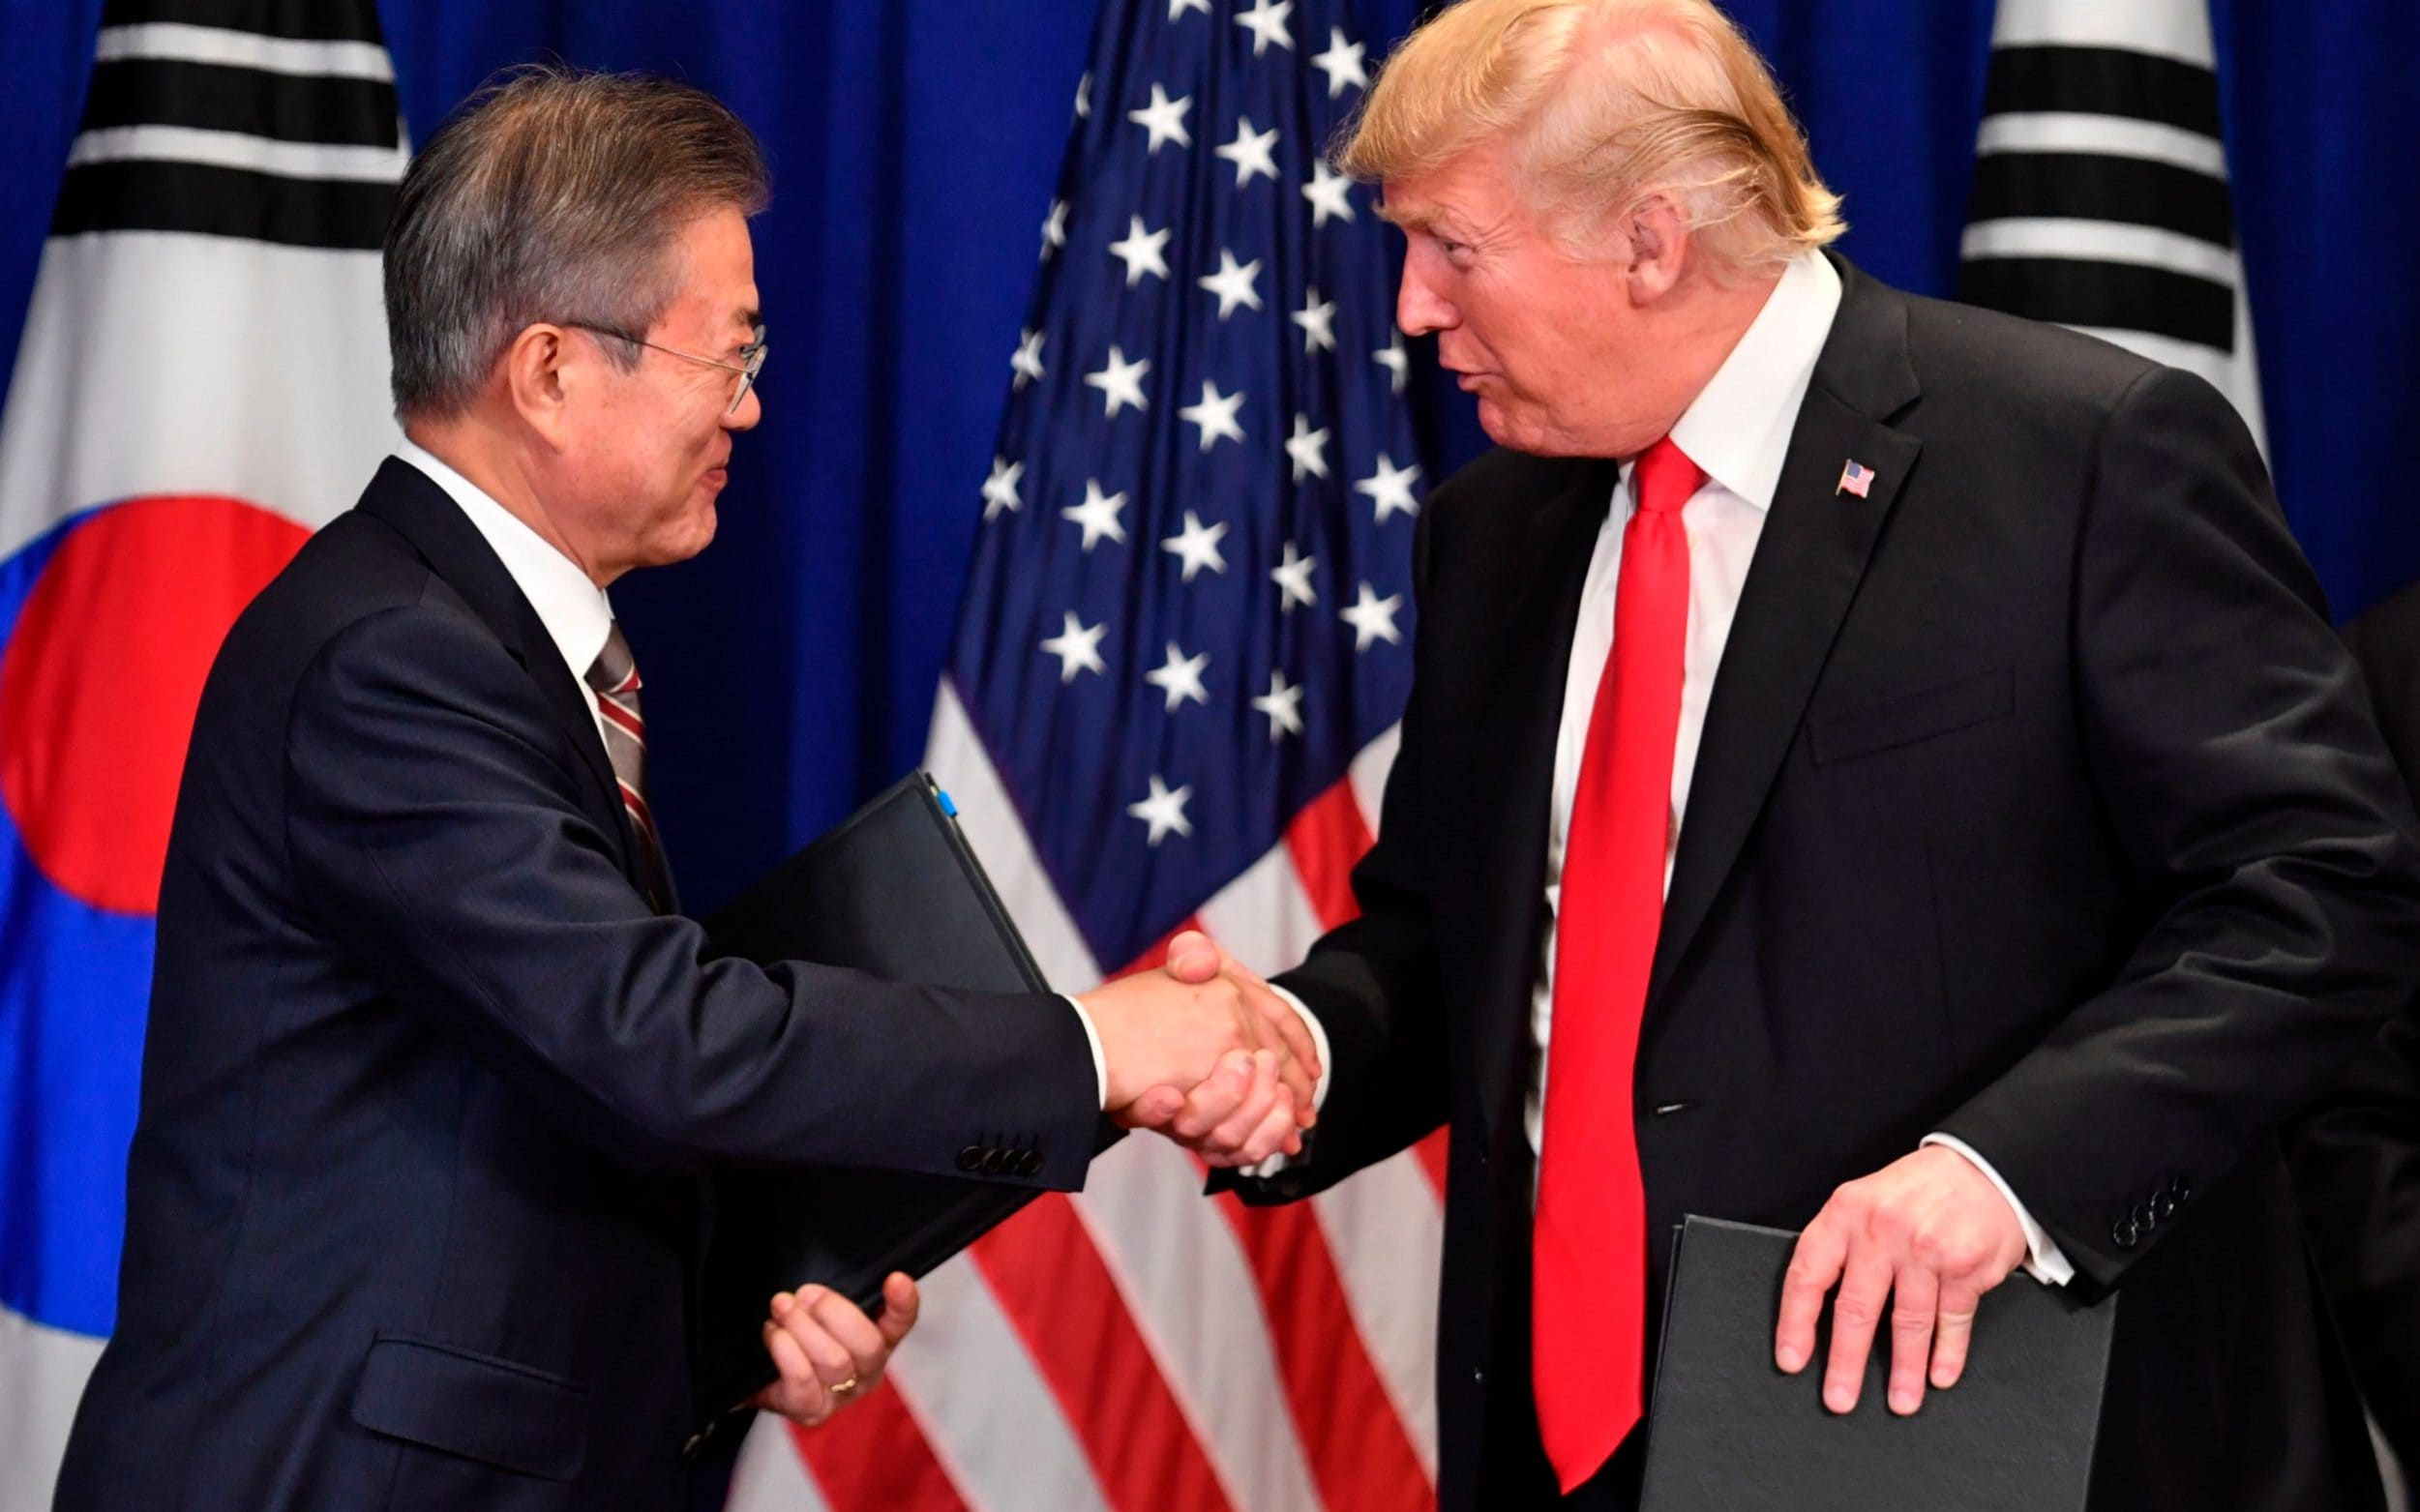 Trump heads to South Korea to save floundering nuclear talks